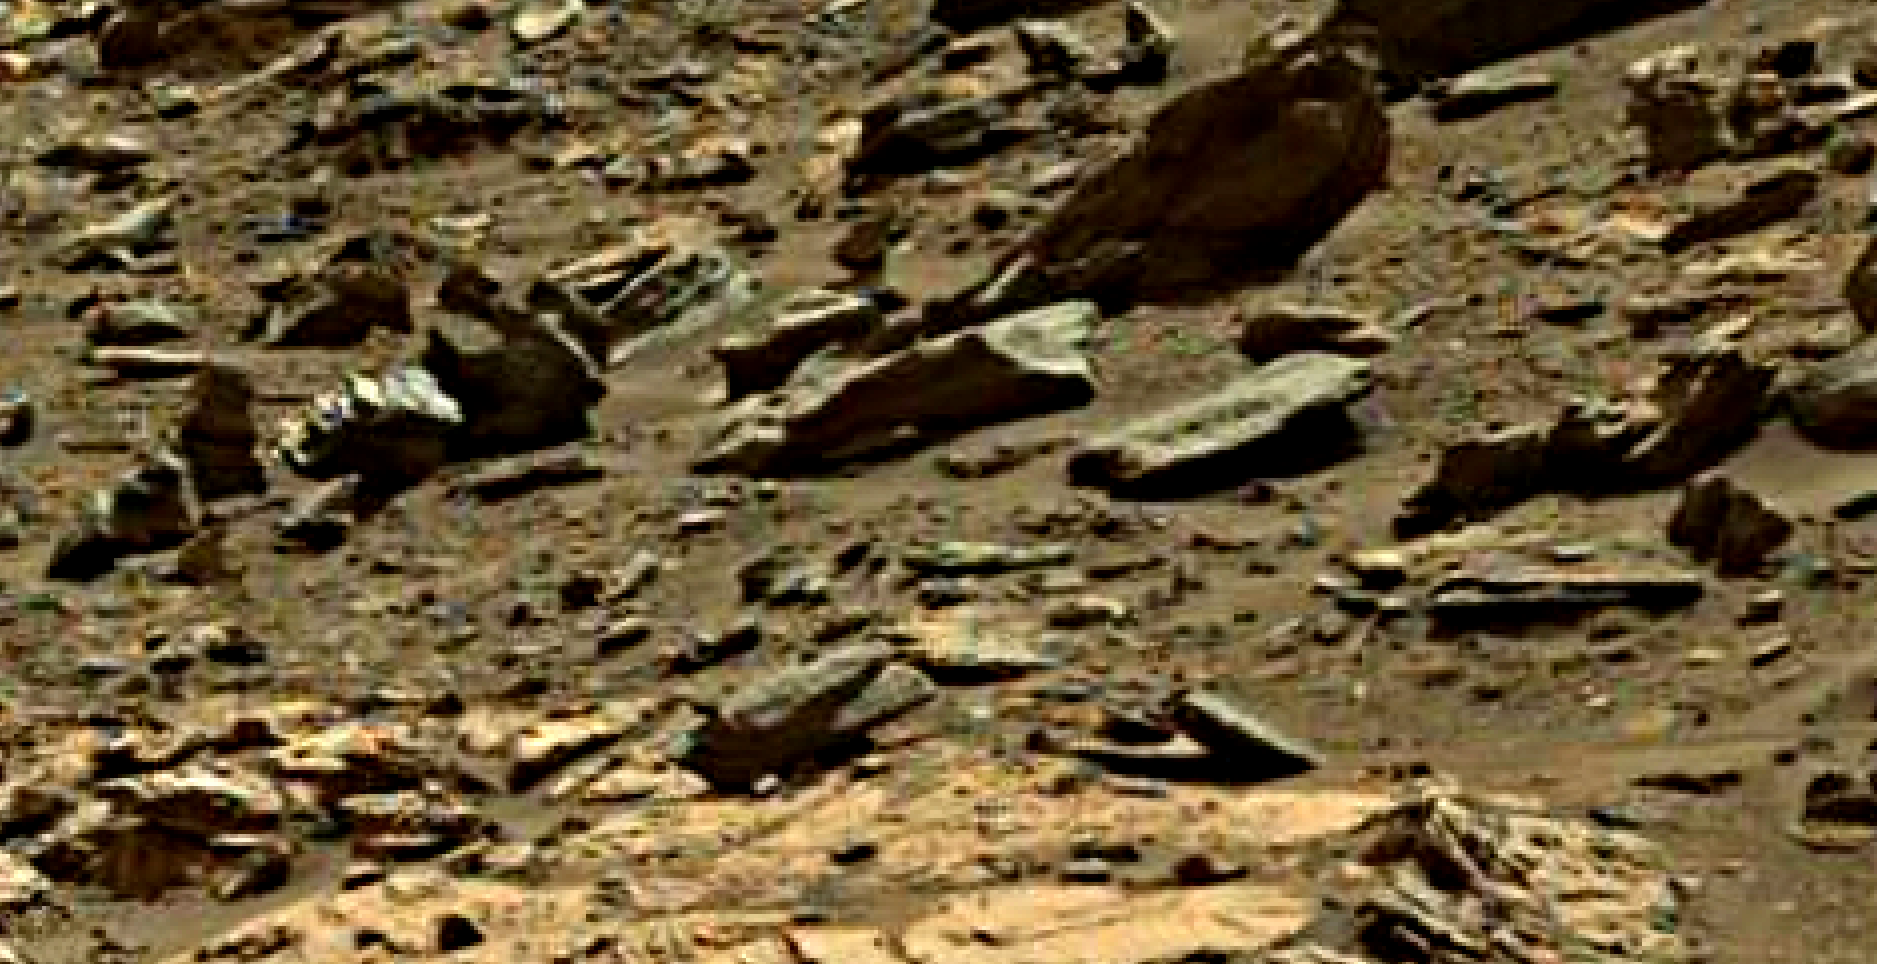 mars-sol-1452-anomaly-artifacts-3-was-life-on-mars